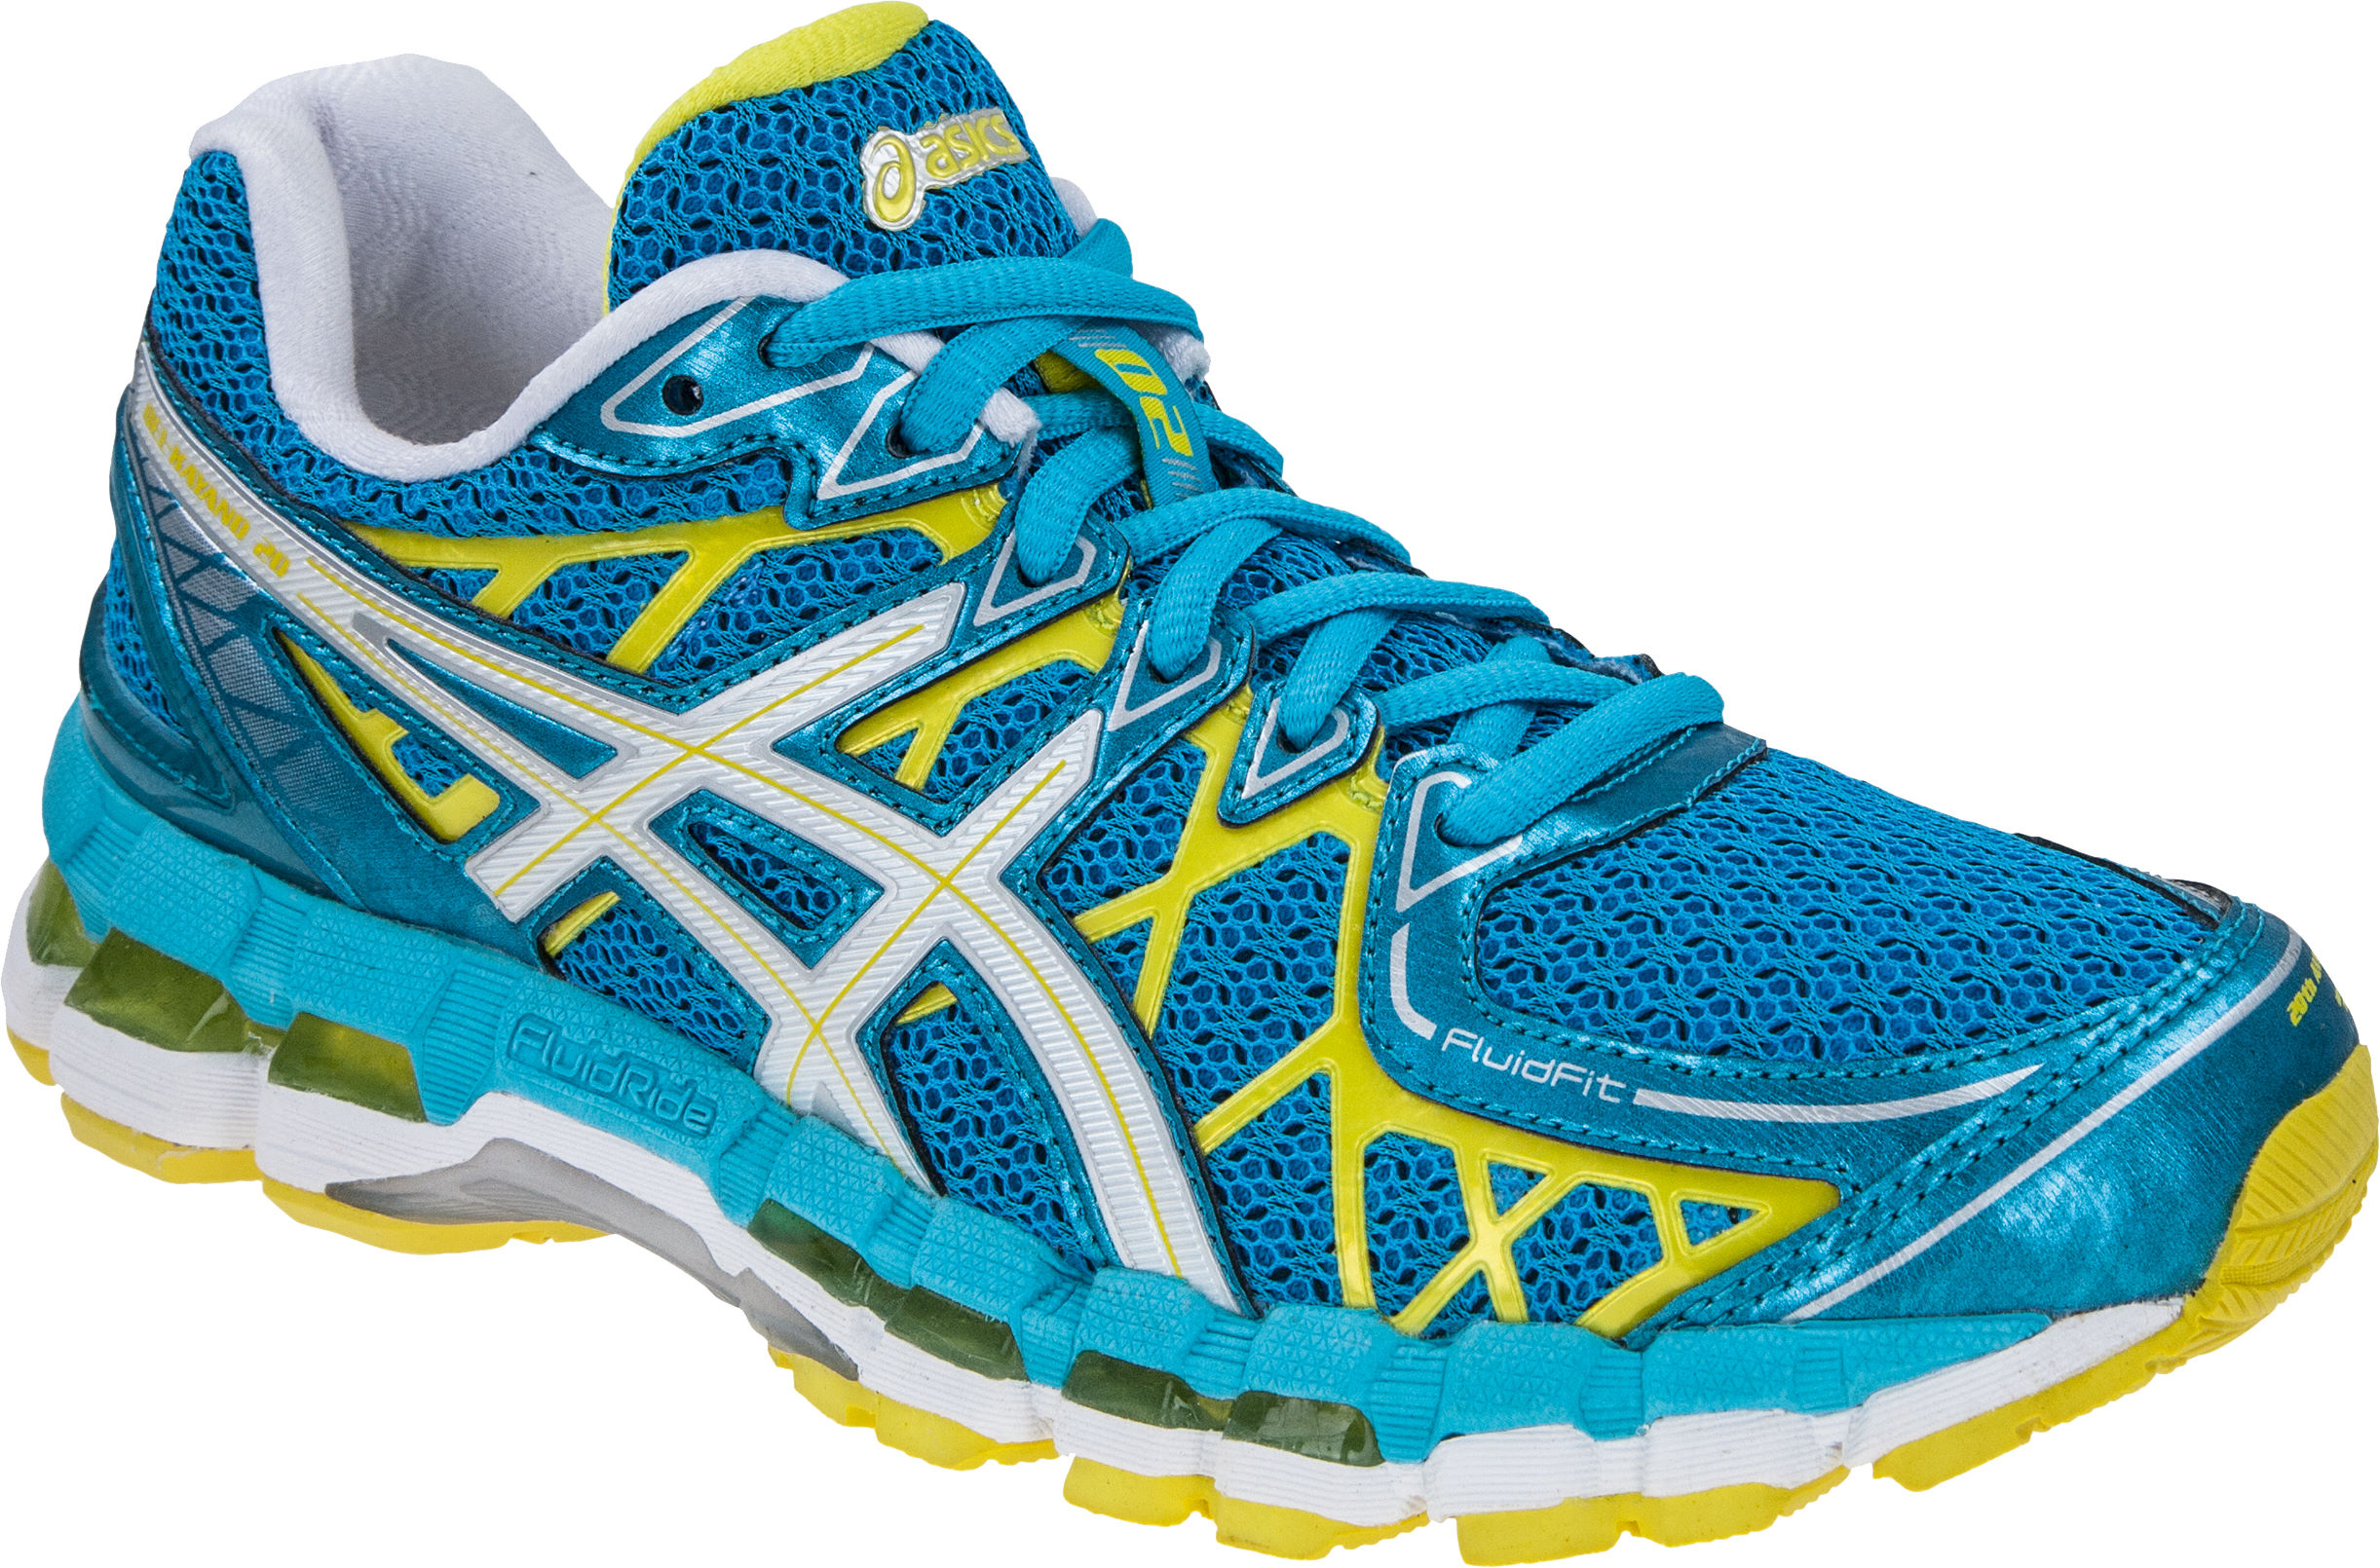 Asics womens gel kayano 20 running shoe